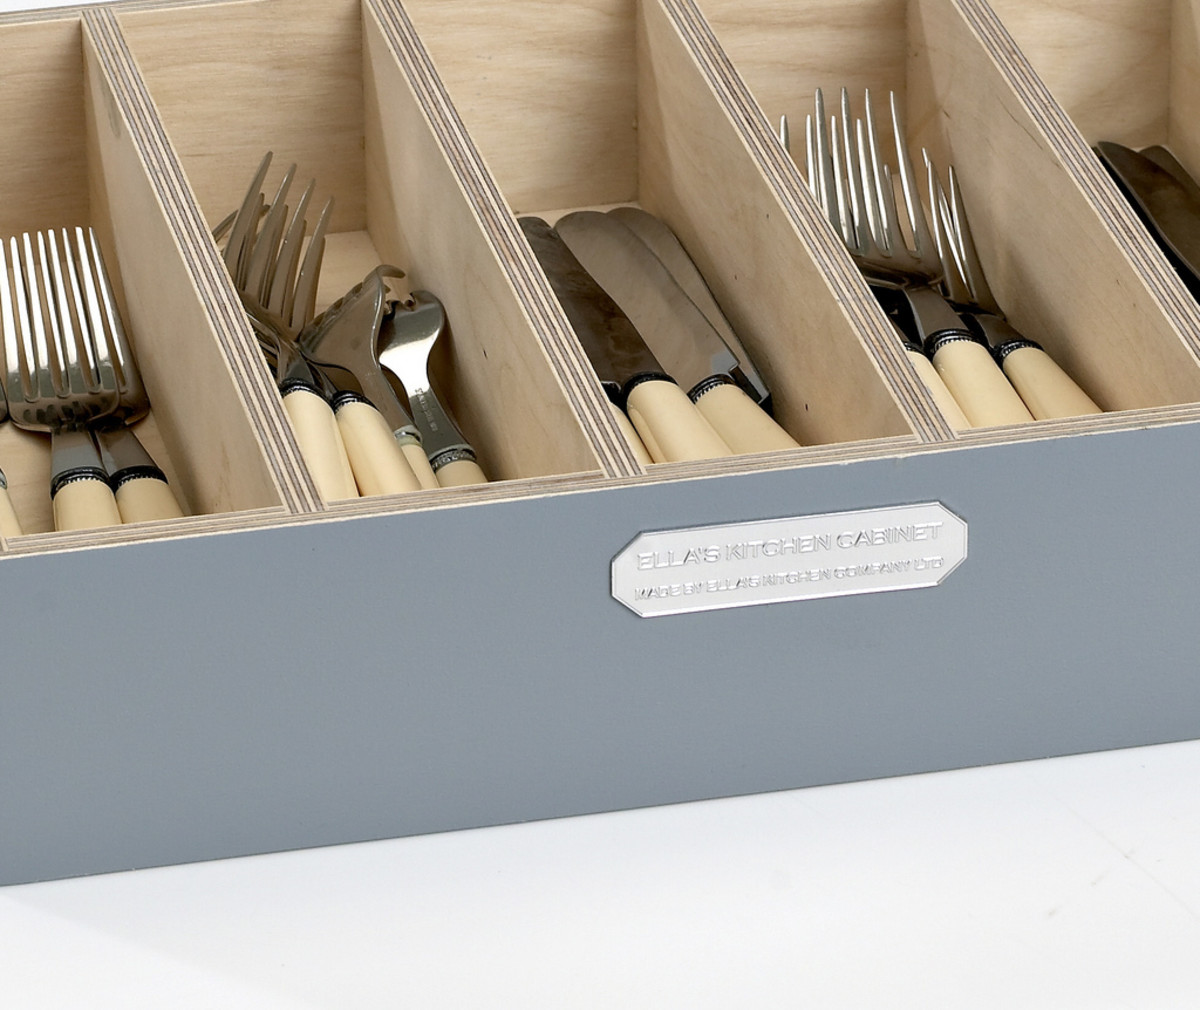 Bring yourown cultery with you when you go out to avoid single use plastic versions.